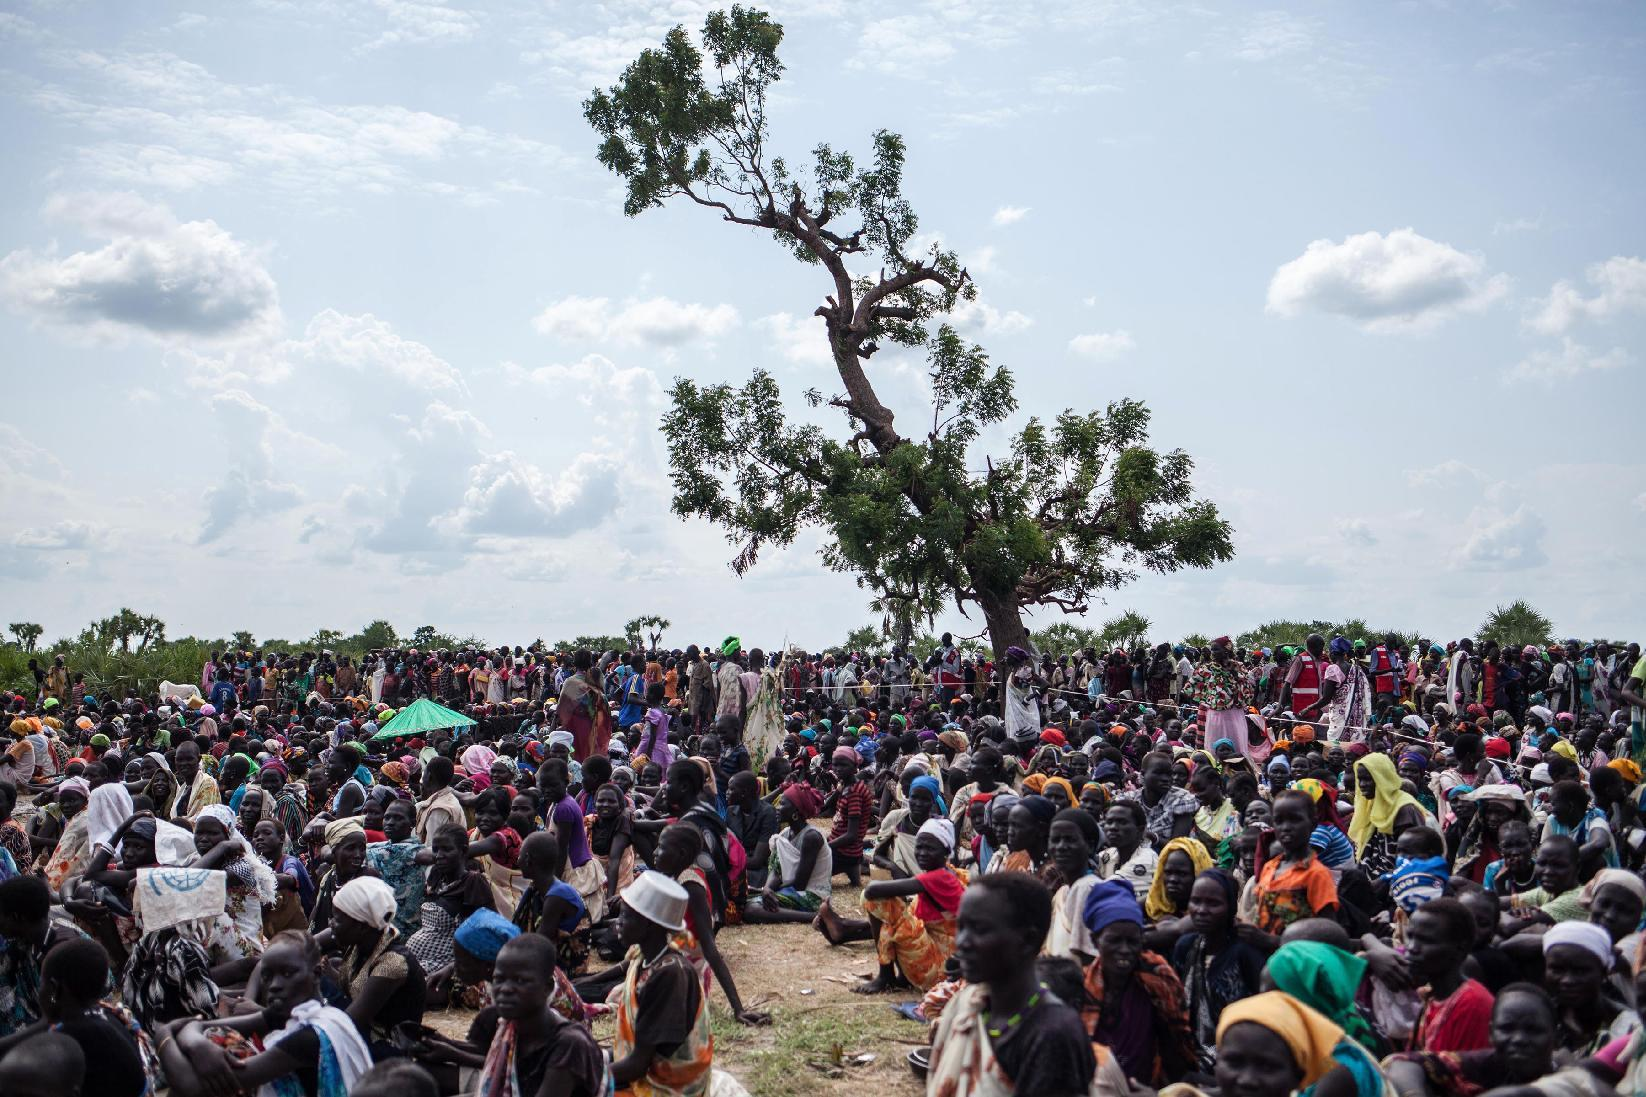 Thousands of people wait in the hot sun near the air drop zone in Leer, South Sudan, on July 5, 2014 (AFP Photo/Nichole Sobecki)